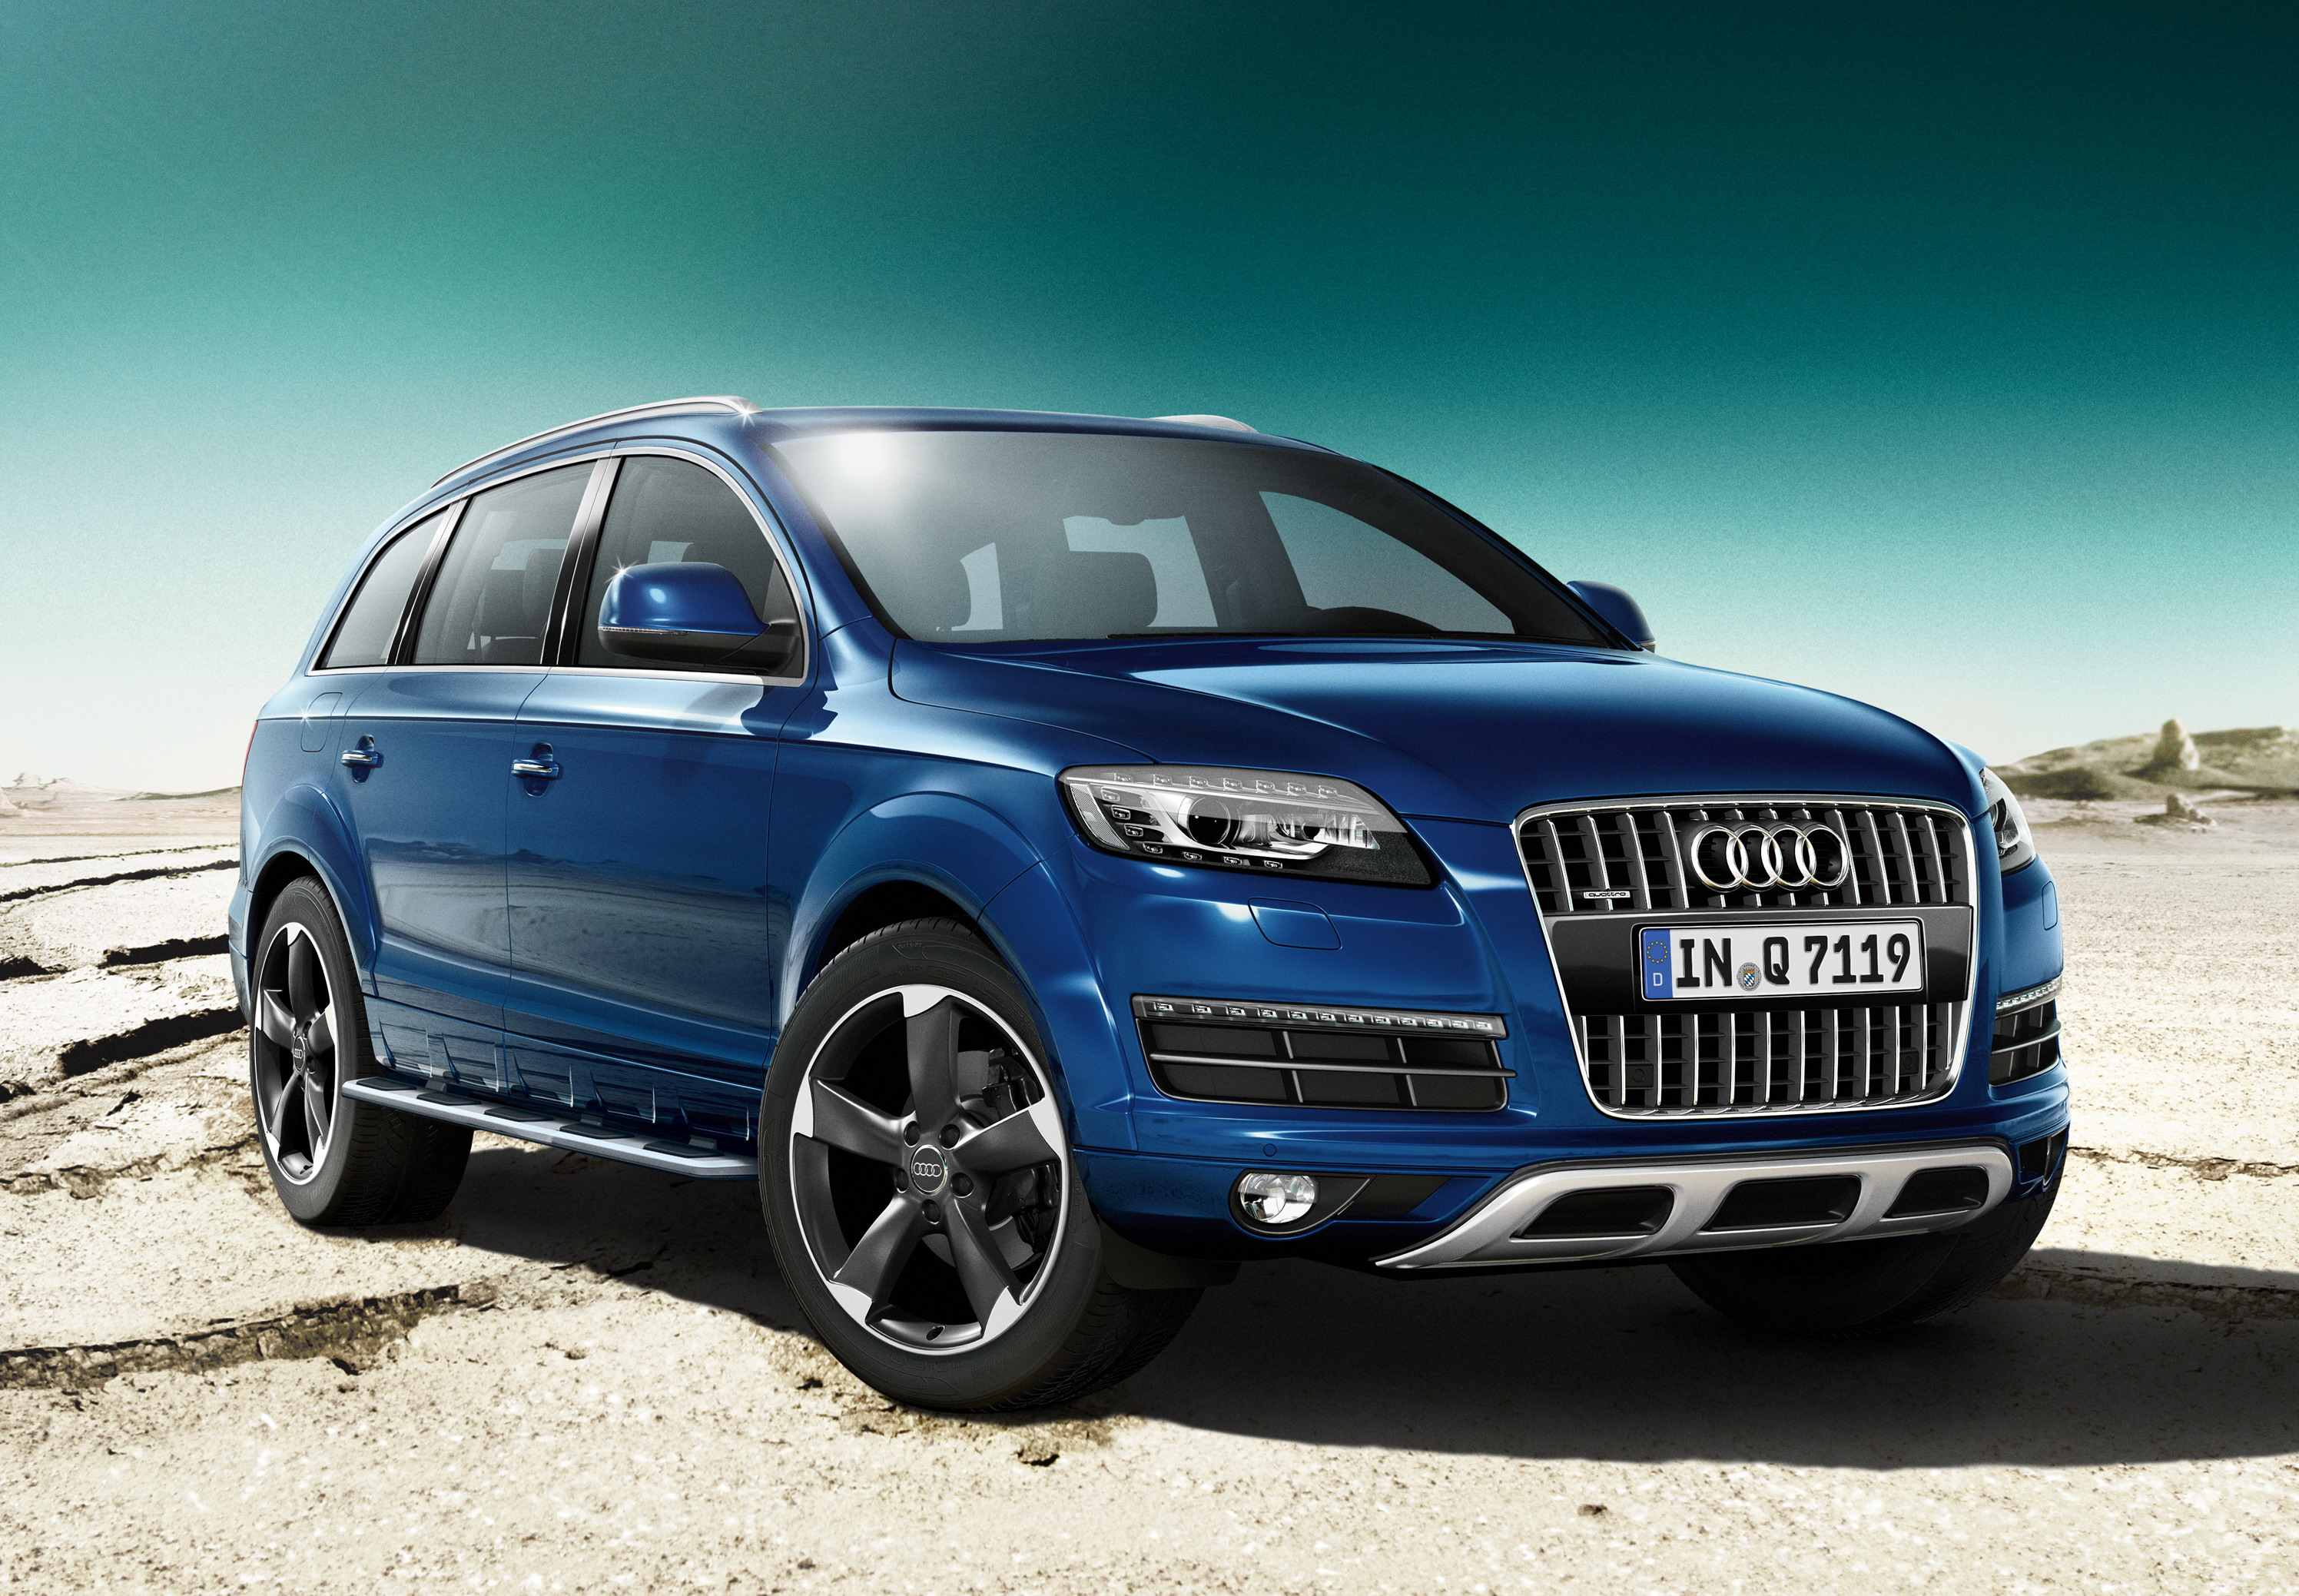 2014 audi q7 s line style edition review top speed. Black Bedroom Furniture Sets. Home Design Ideas